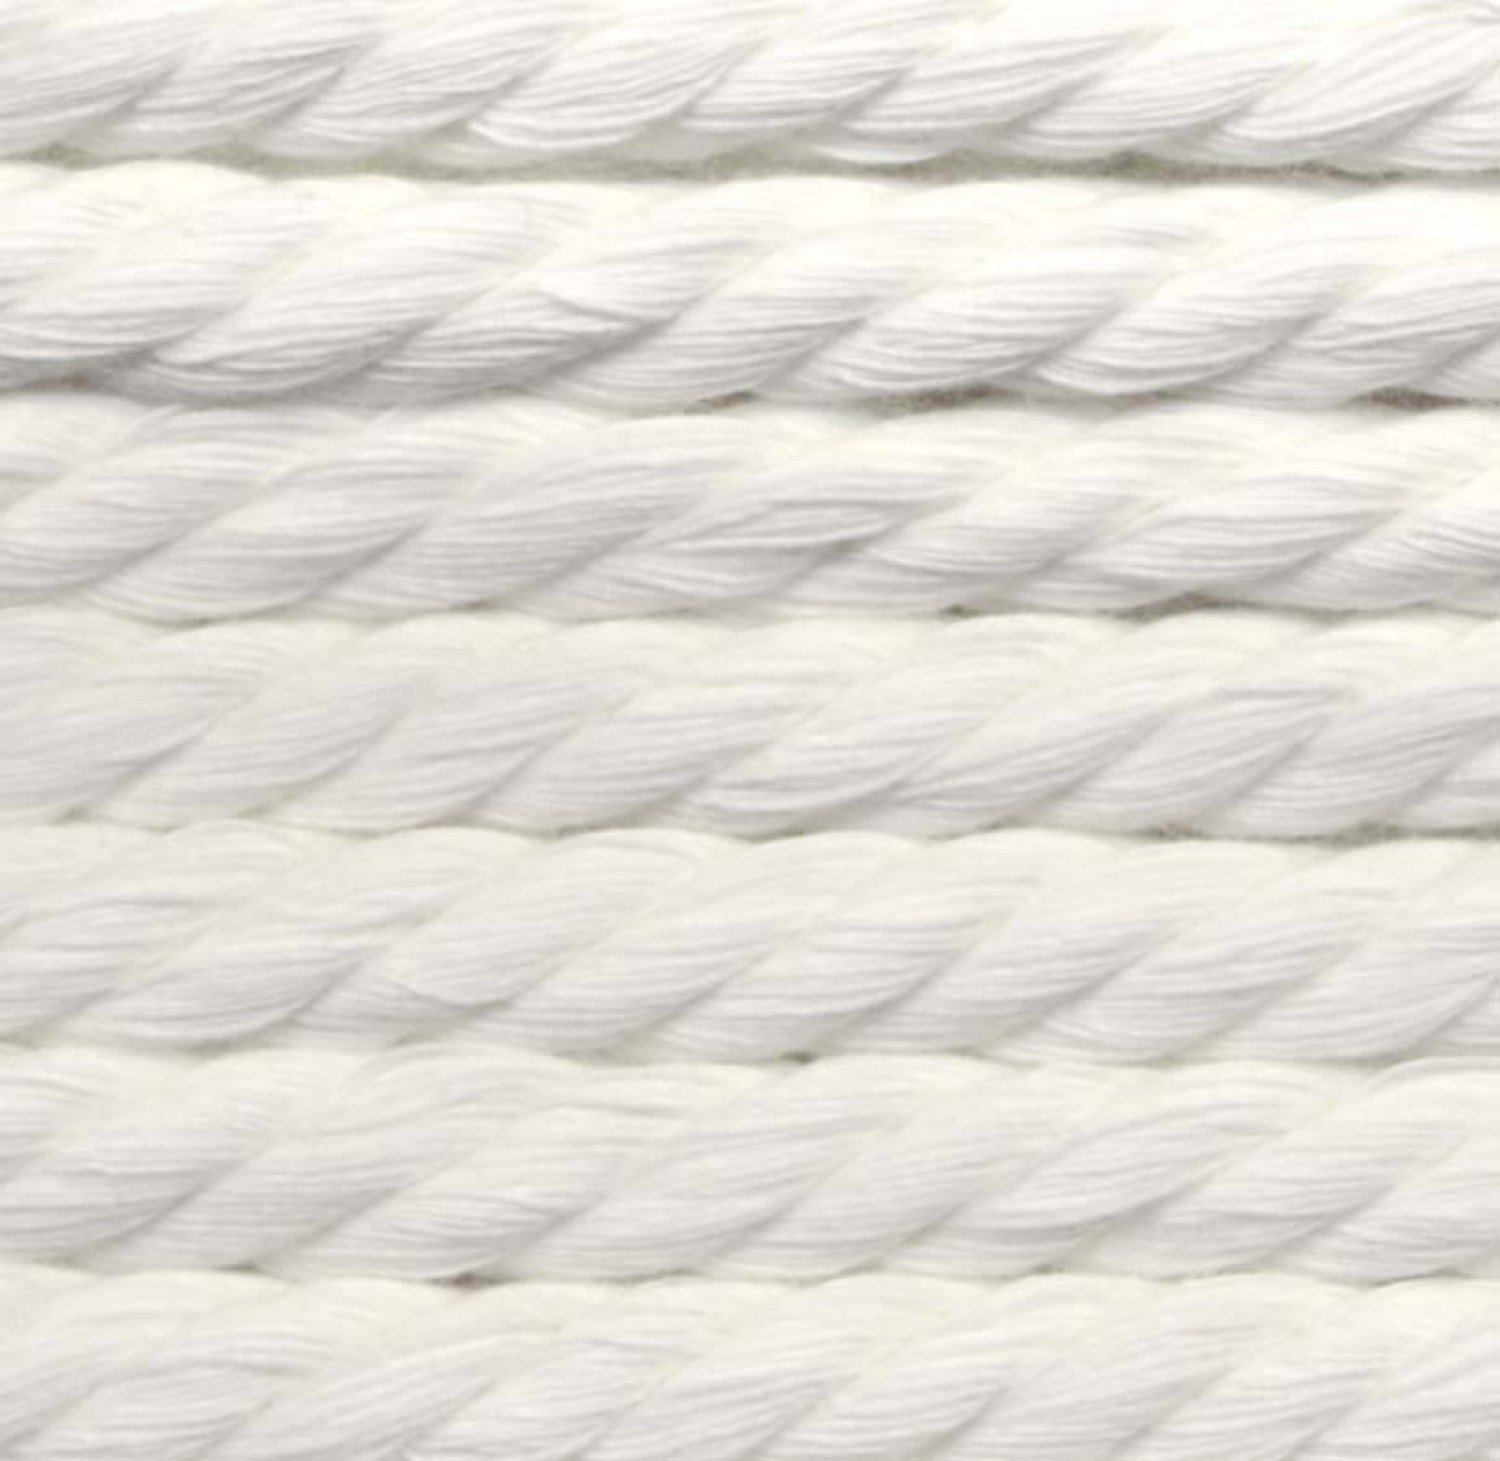 10 yards 1/4 cotton piping cord